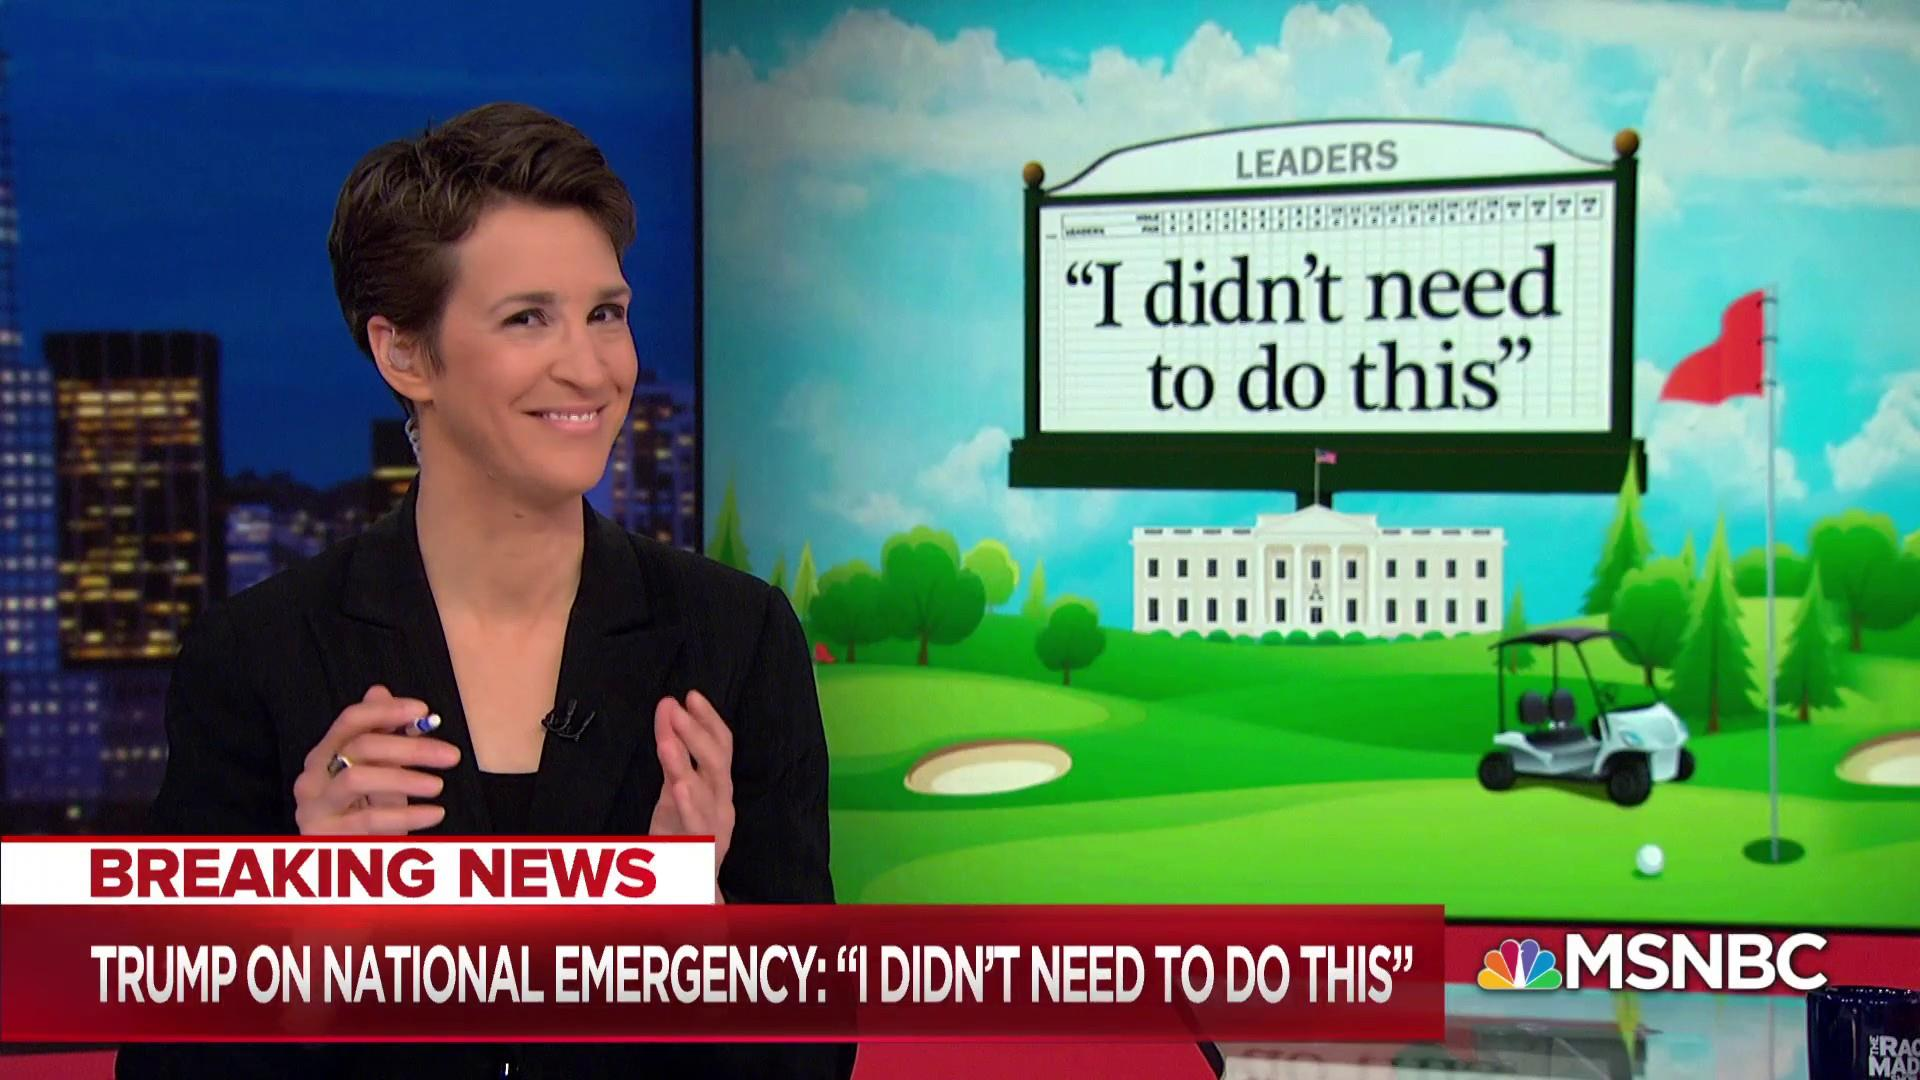 Trump undermines emergency declaration as soon as he makes it